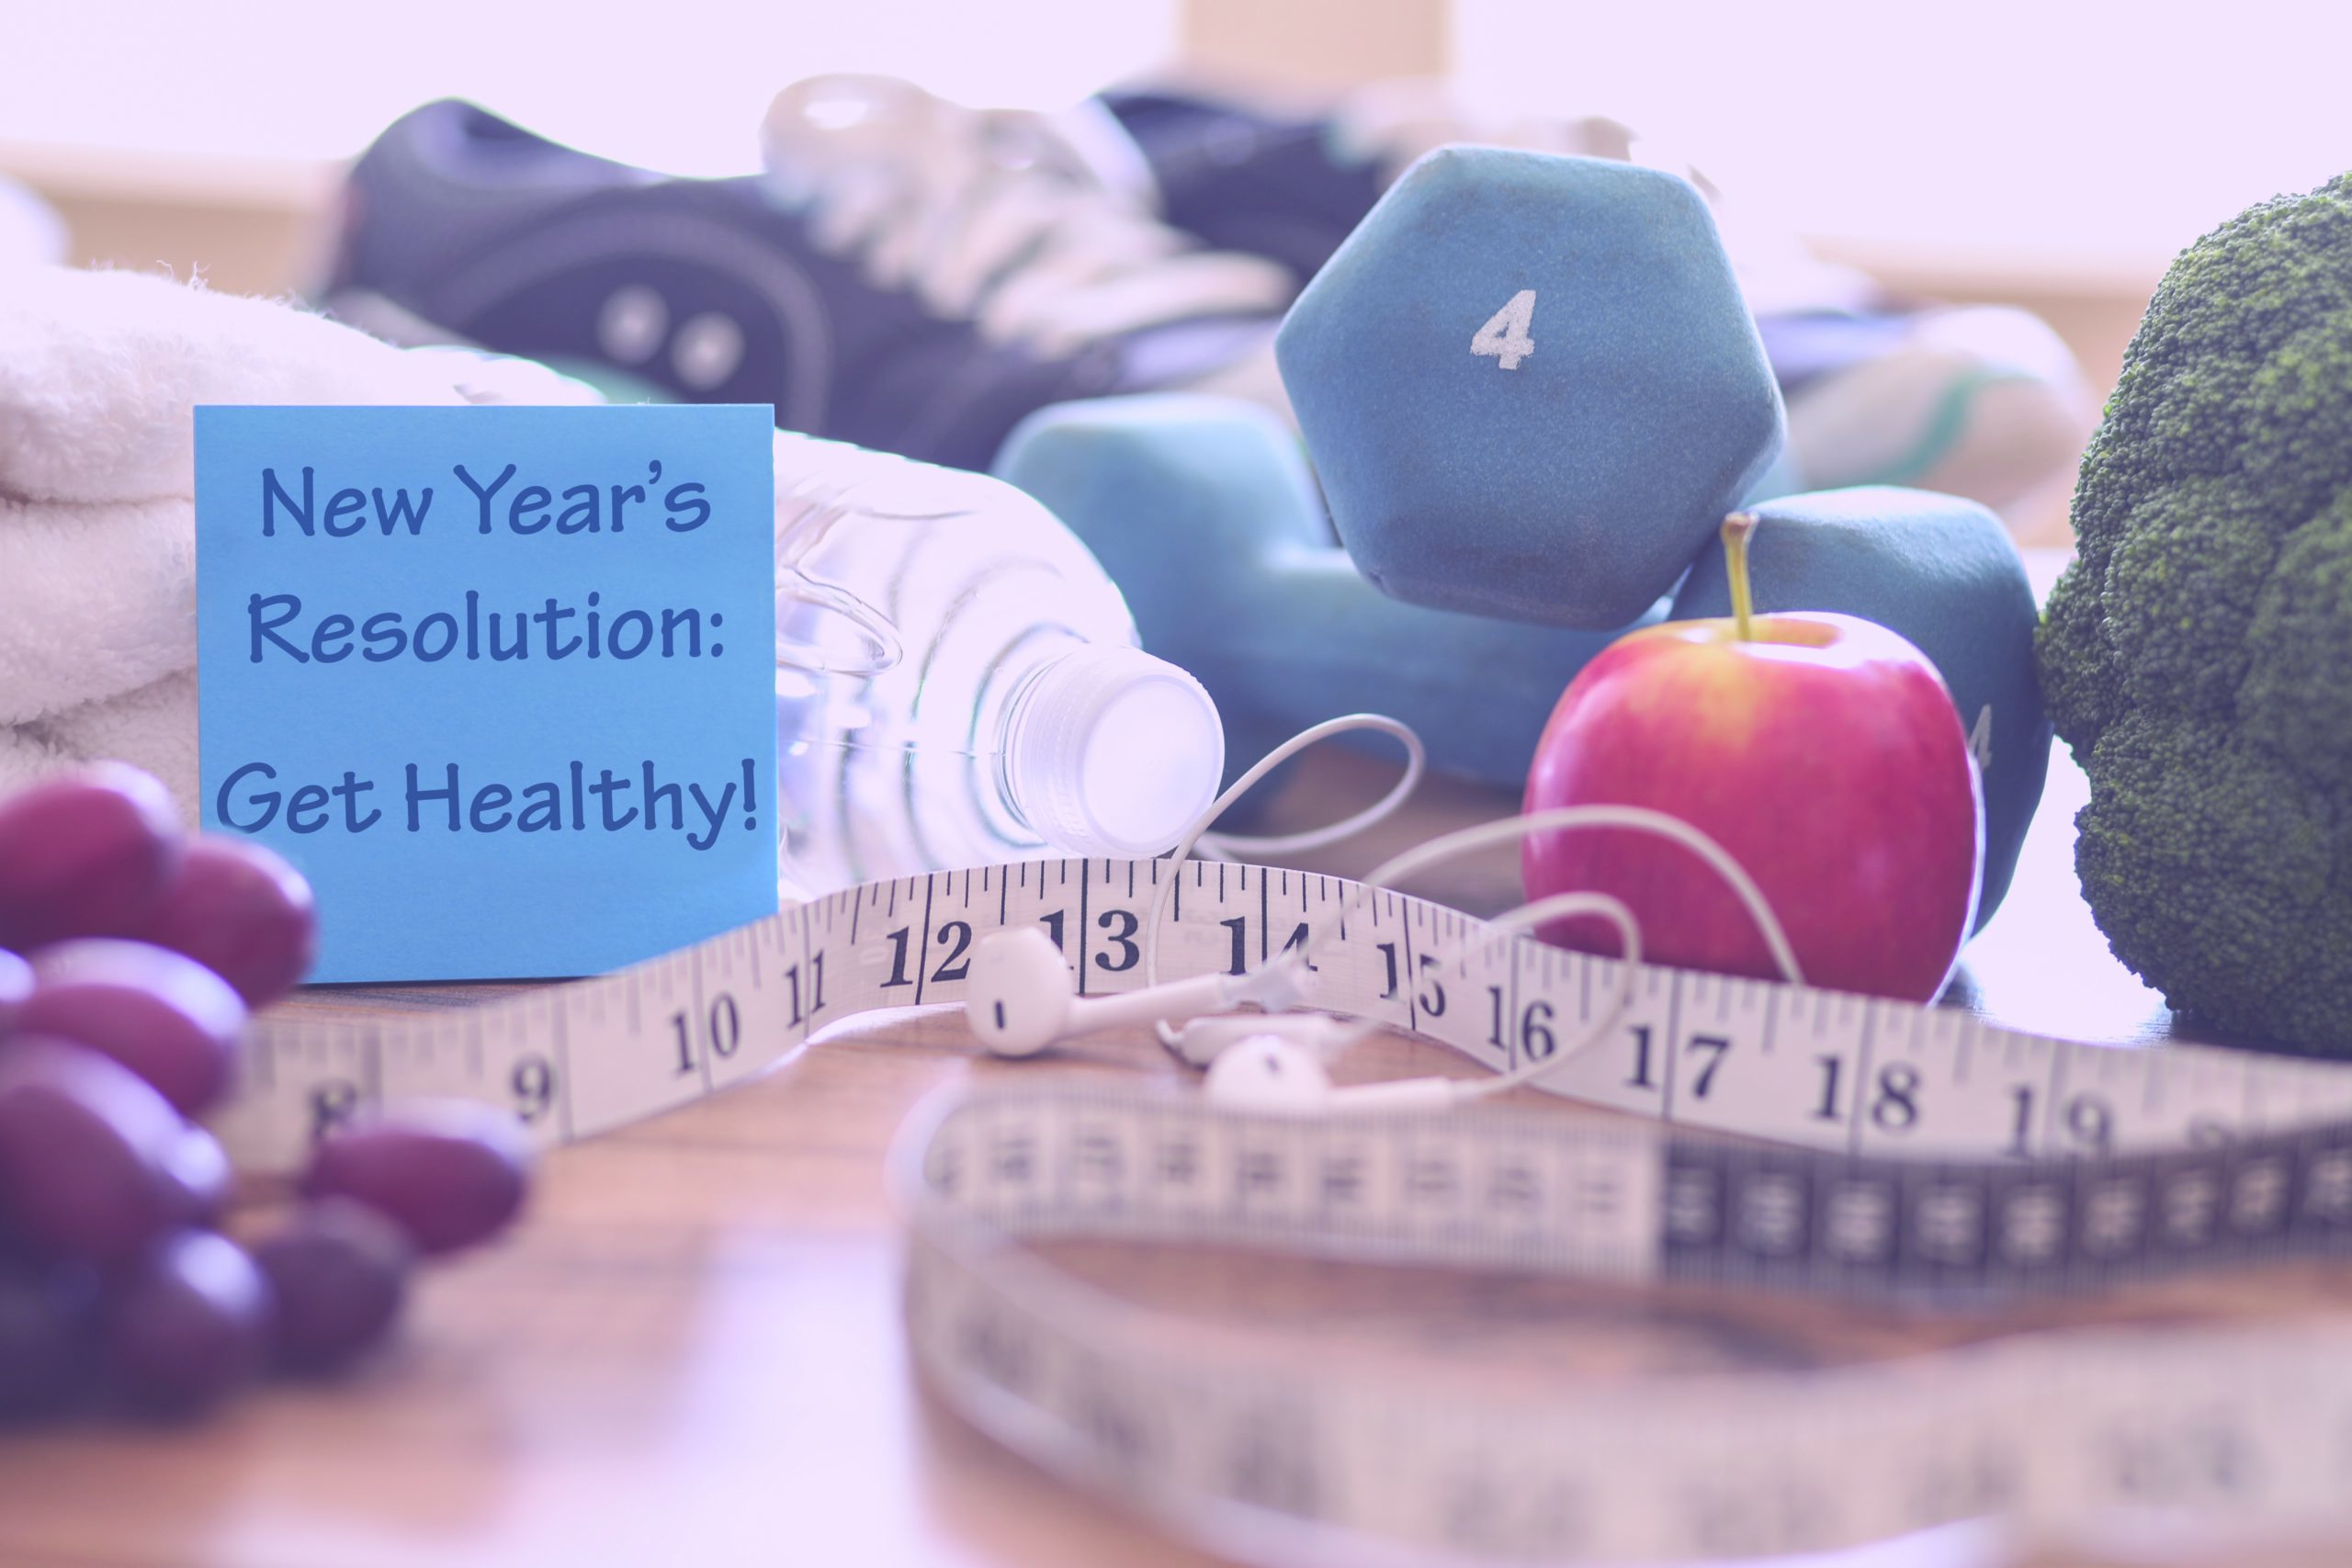 weights tape measure apple new year's health regimen